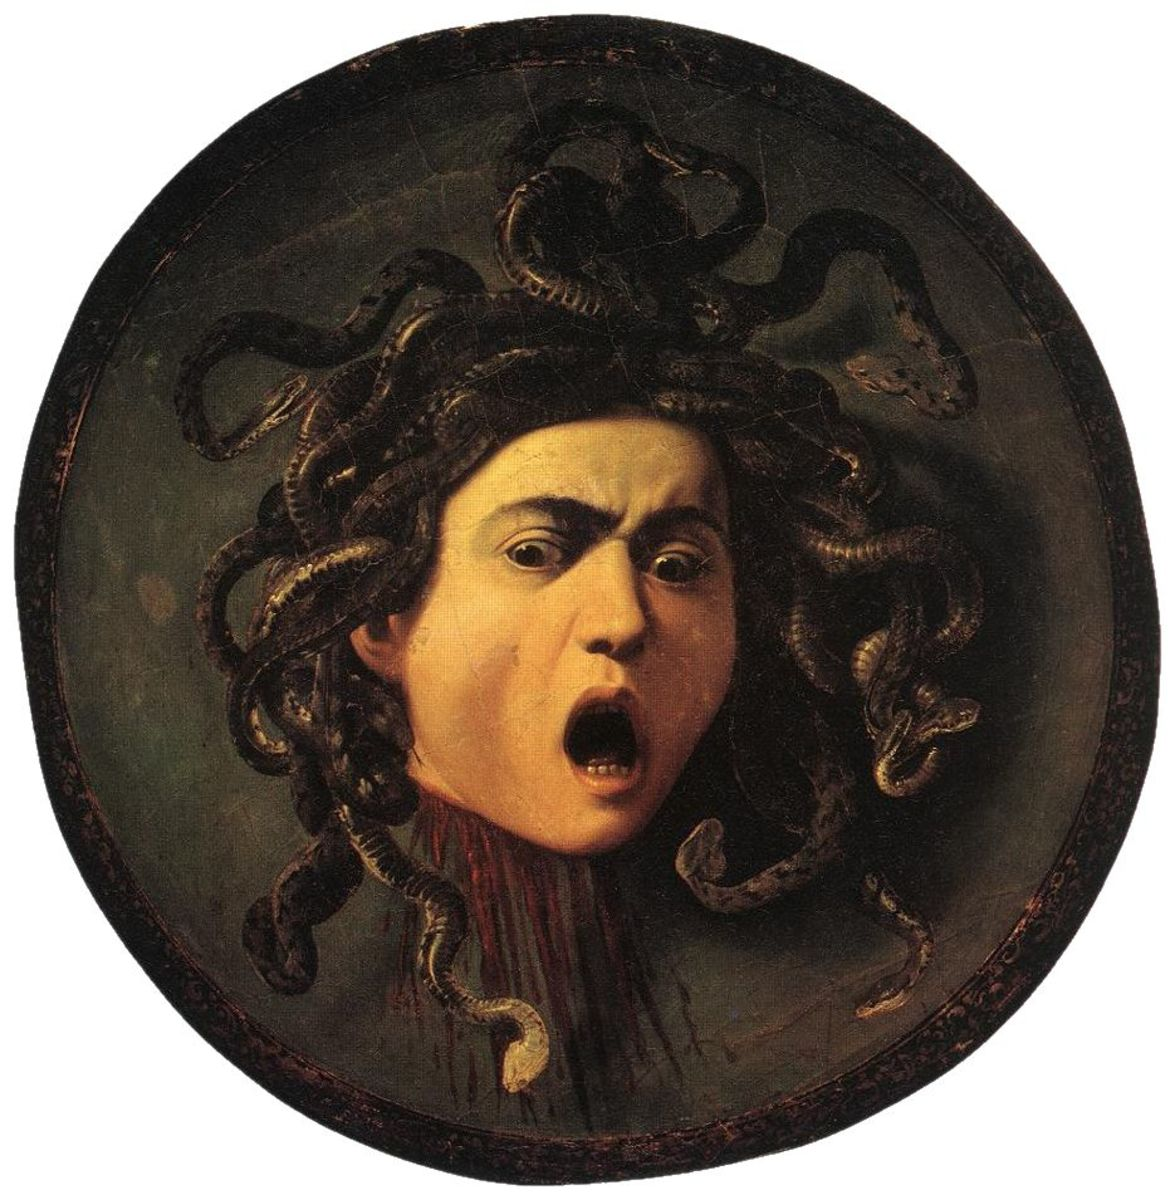 Caravaggio's Medusa is one of the most well-known representations of the gorgon.